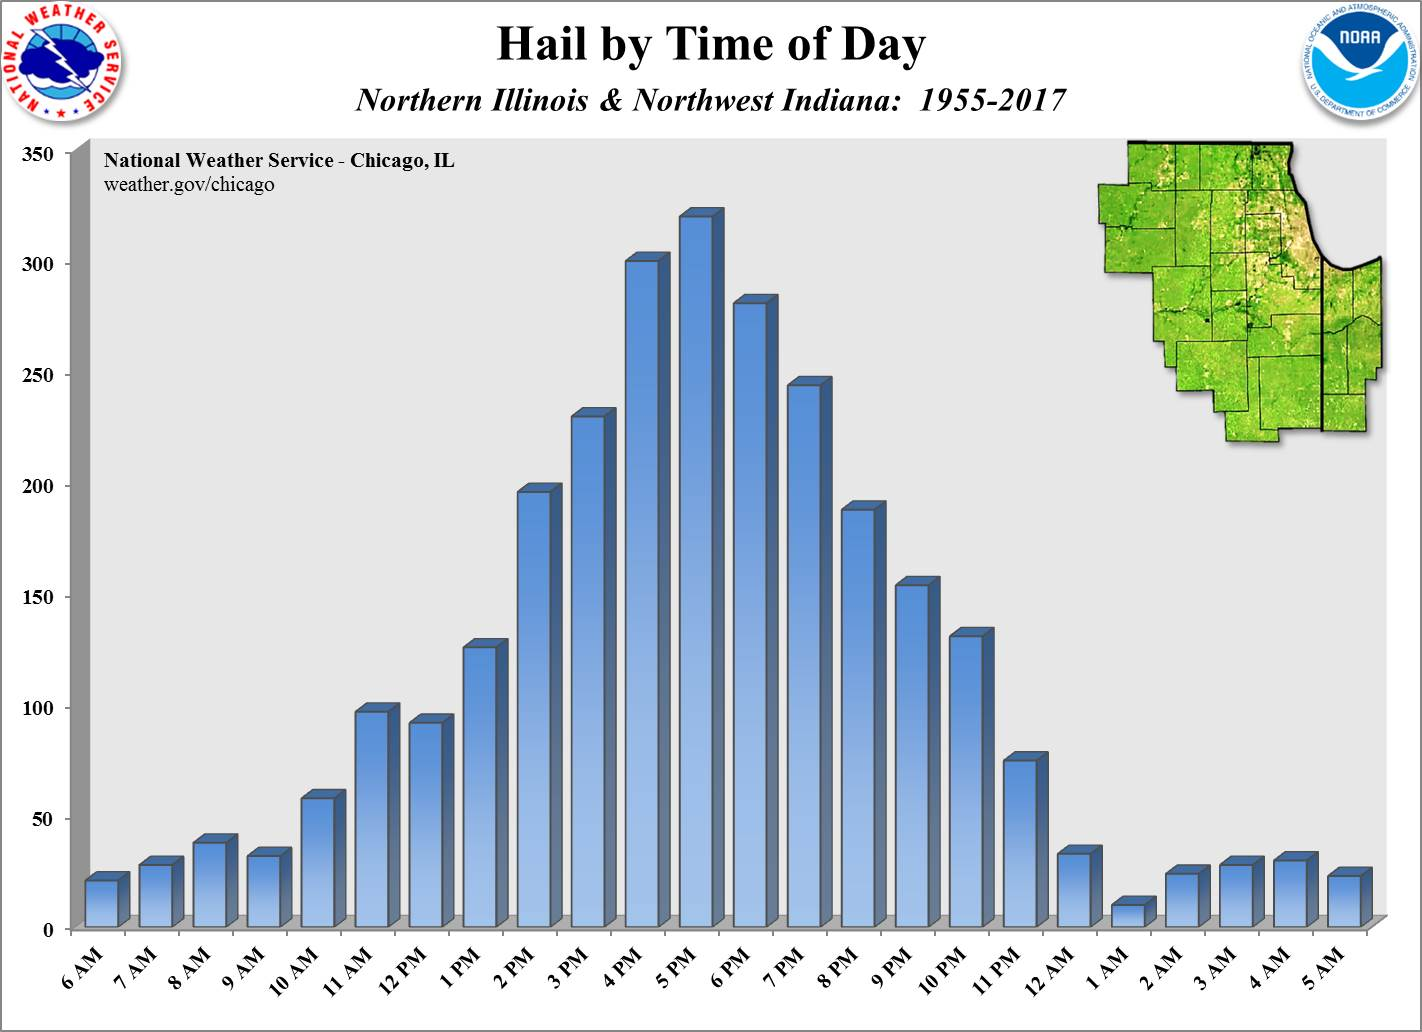 Hail by Time of Day